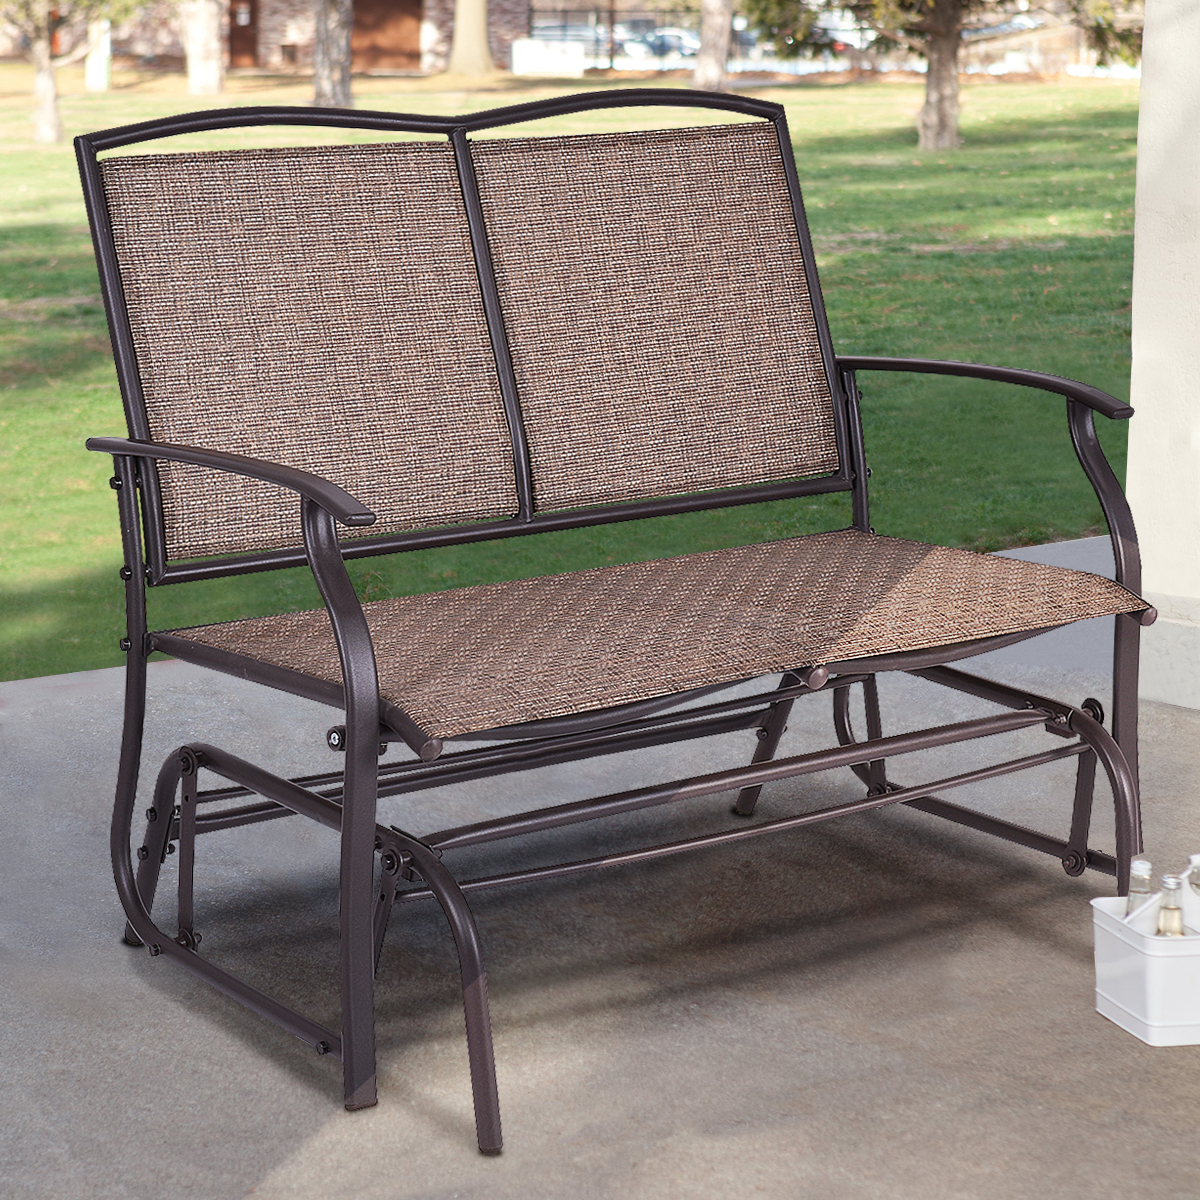 Costway Patio Glider Rocking Bench Double 2 Person Chair Loveseat Armchair  Backyard – Walmart Inside Iron Double Patio Glider Benches (Image 5 of 25)